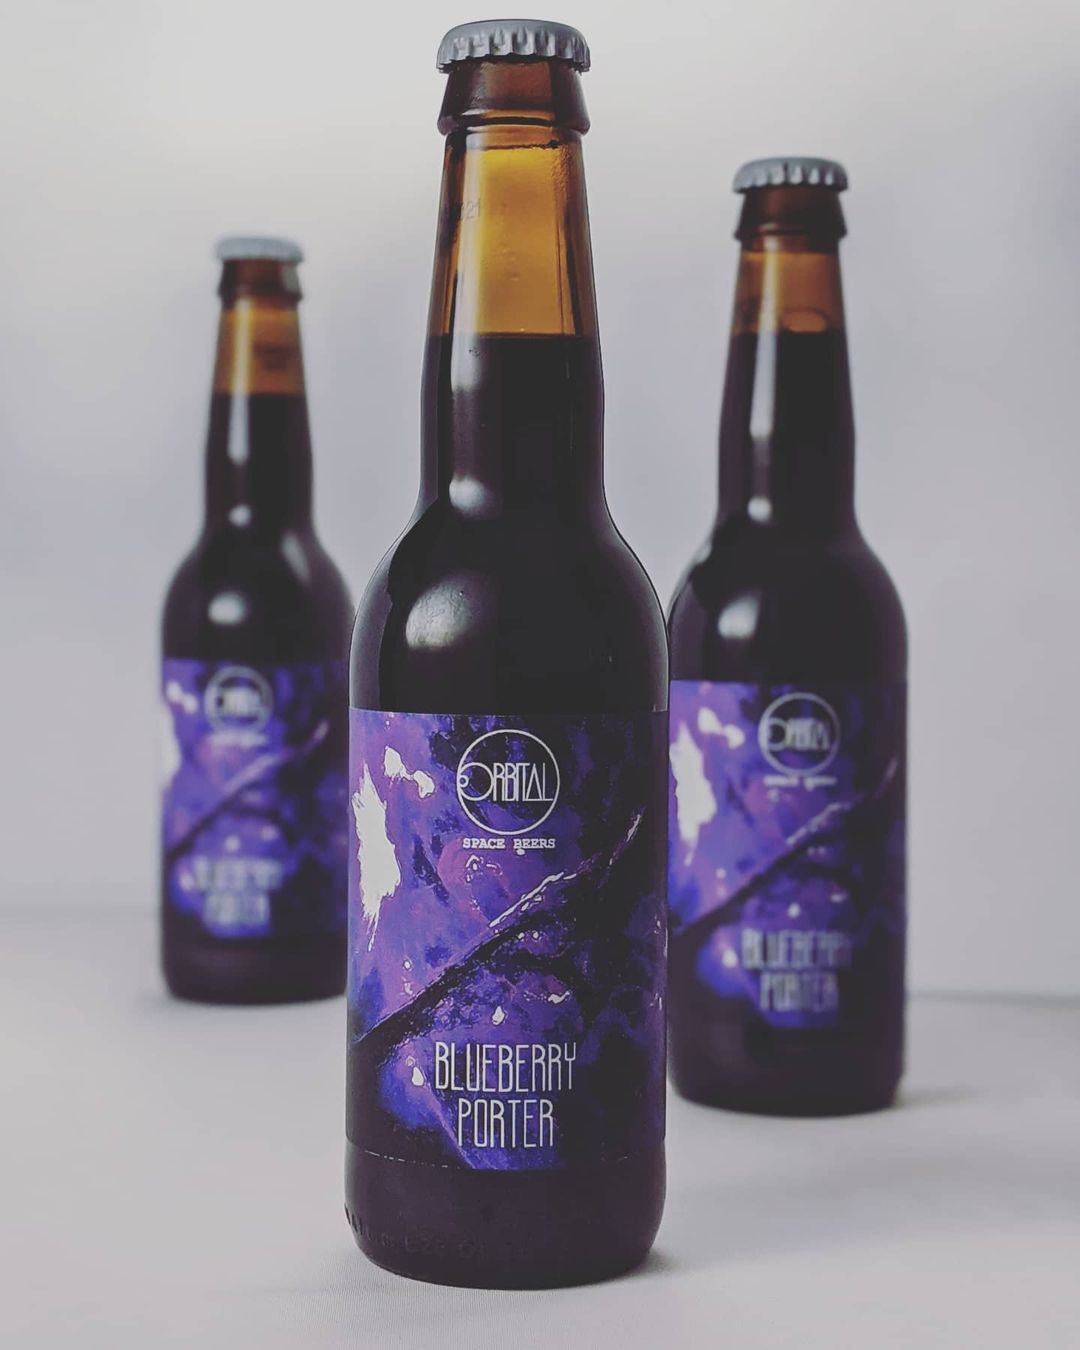 Orbital Space Beers - Blueberry Porter